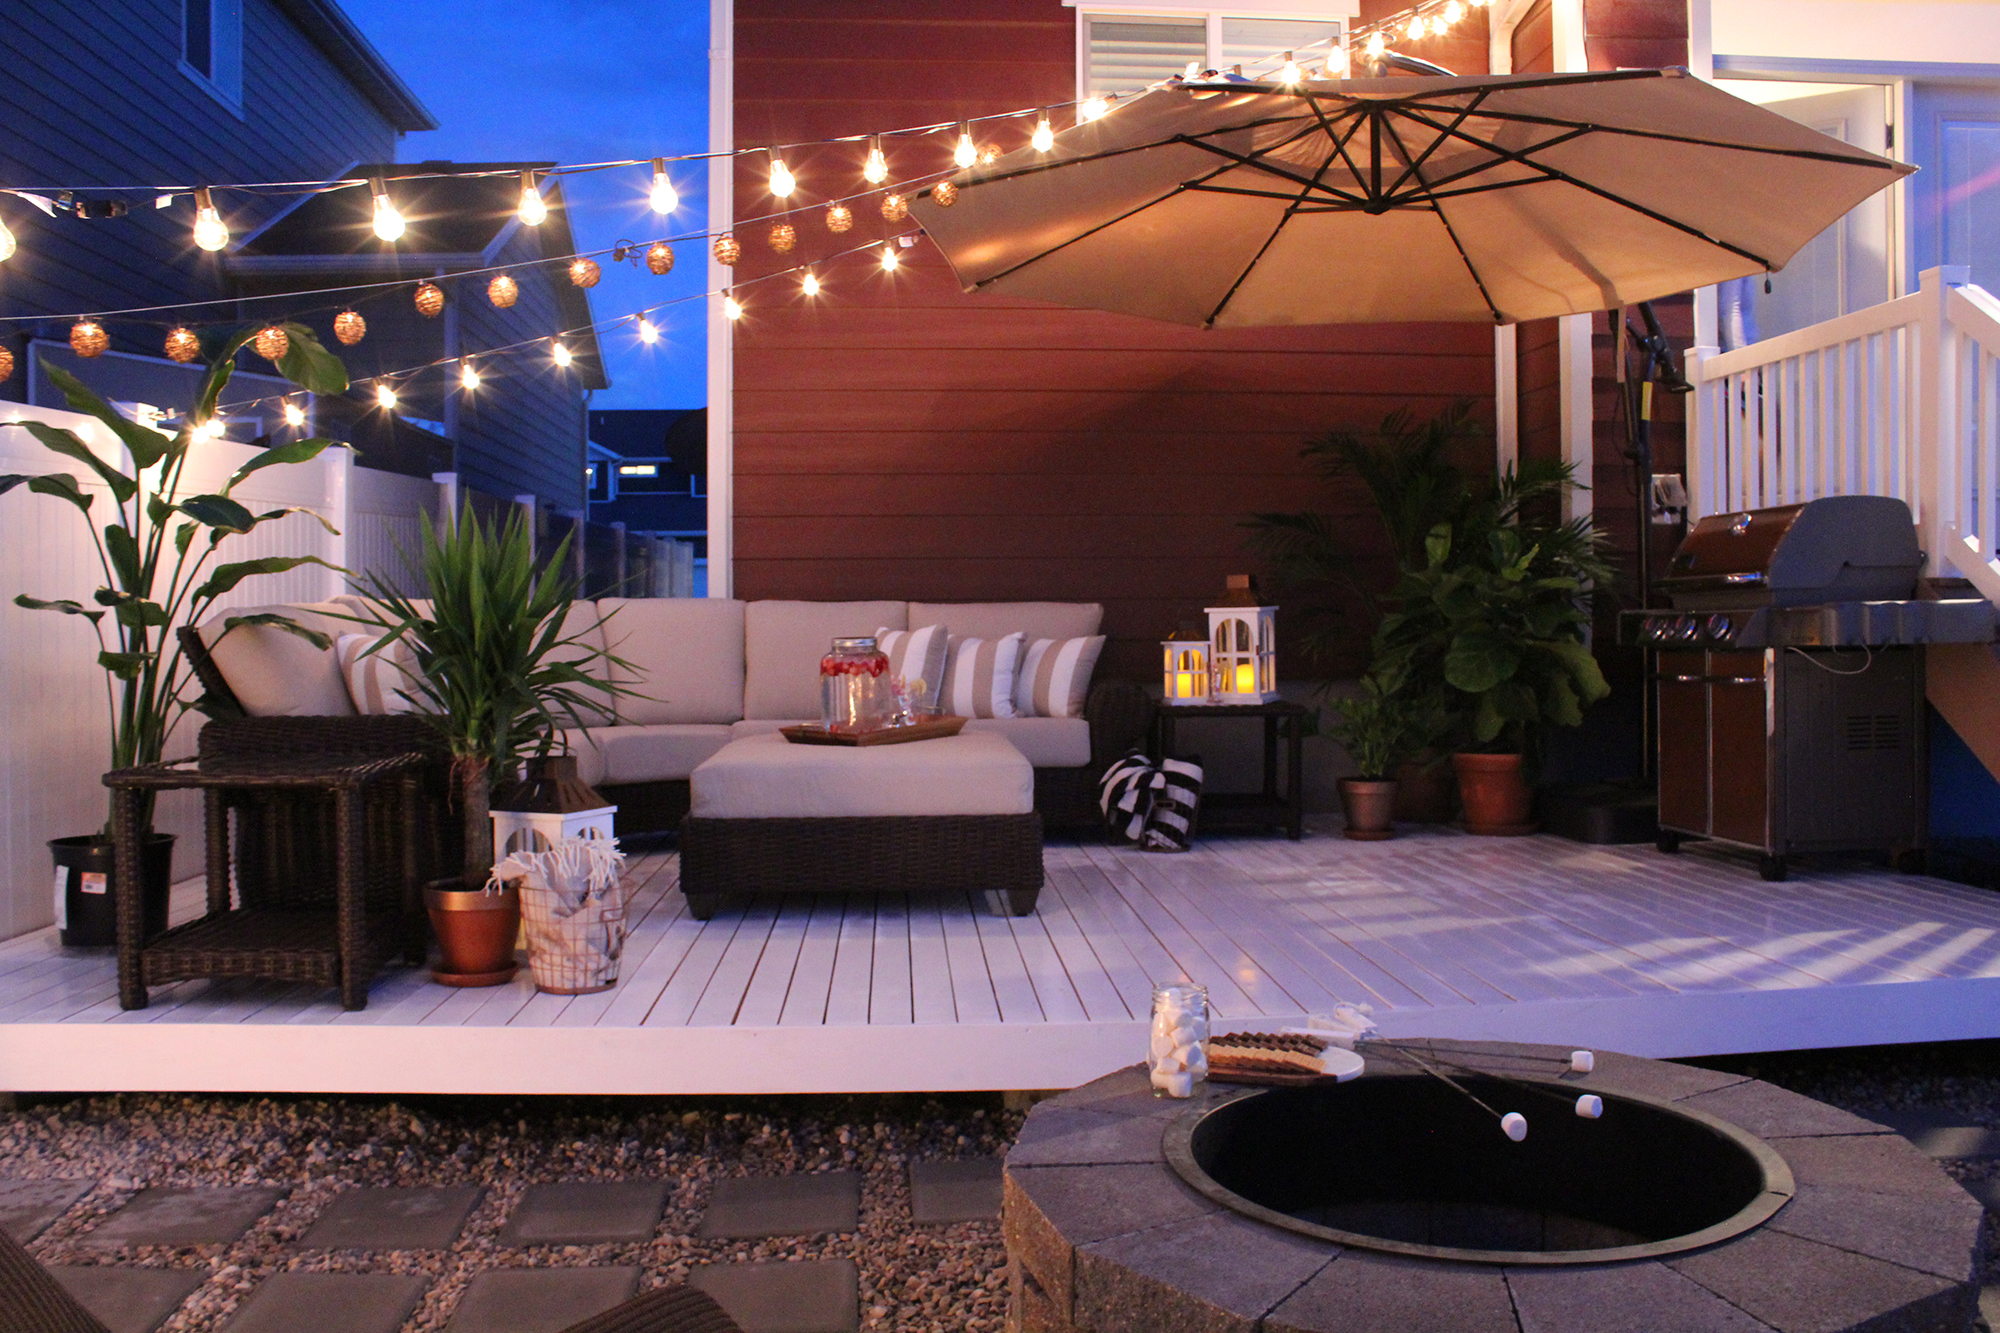 The Home Depot TOP 4 OUTDOOR DECOR TRENDS FROM THIS YEAR S PATIO STYLE CHAL